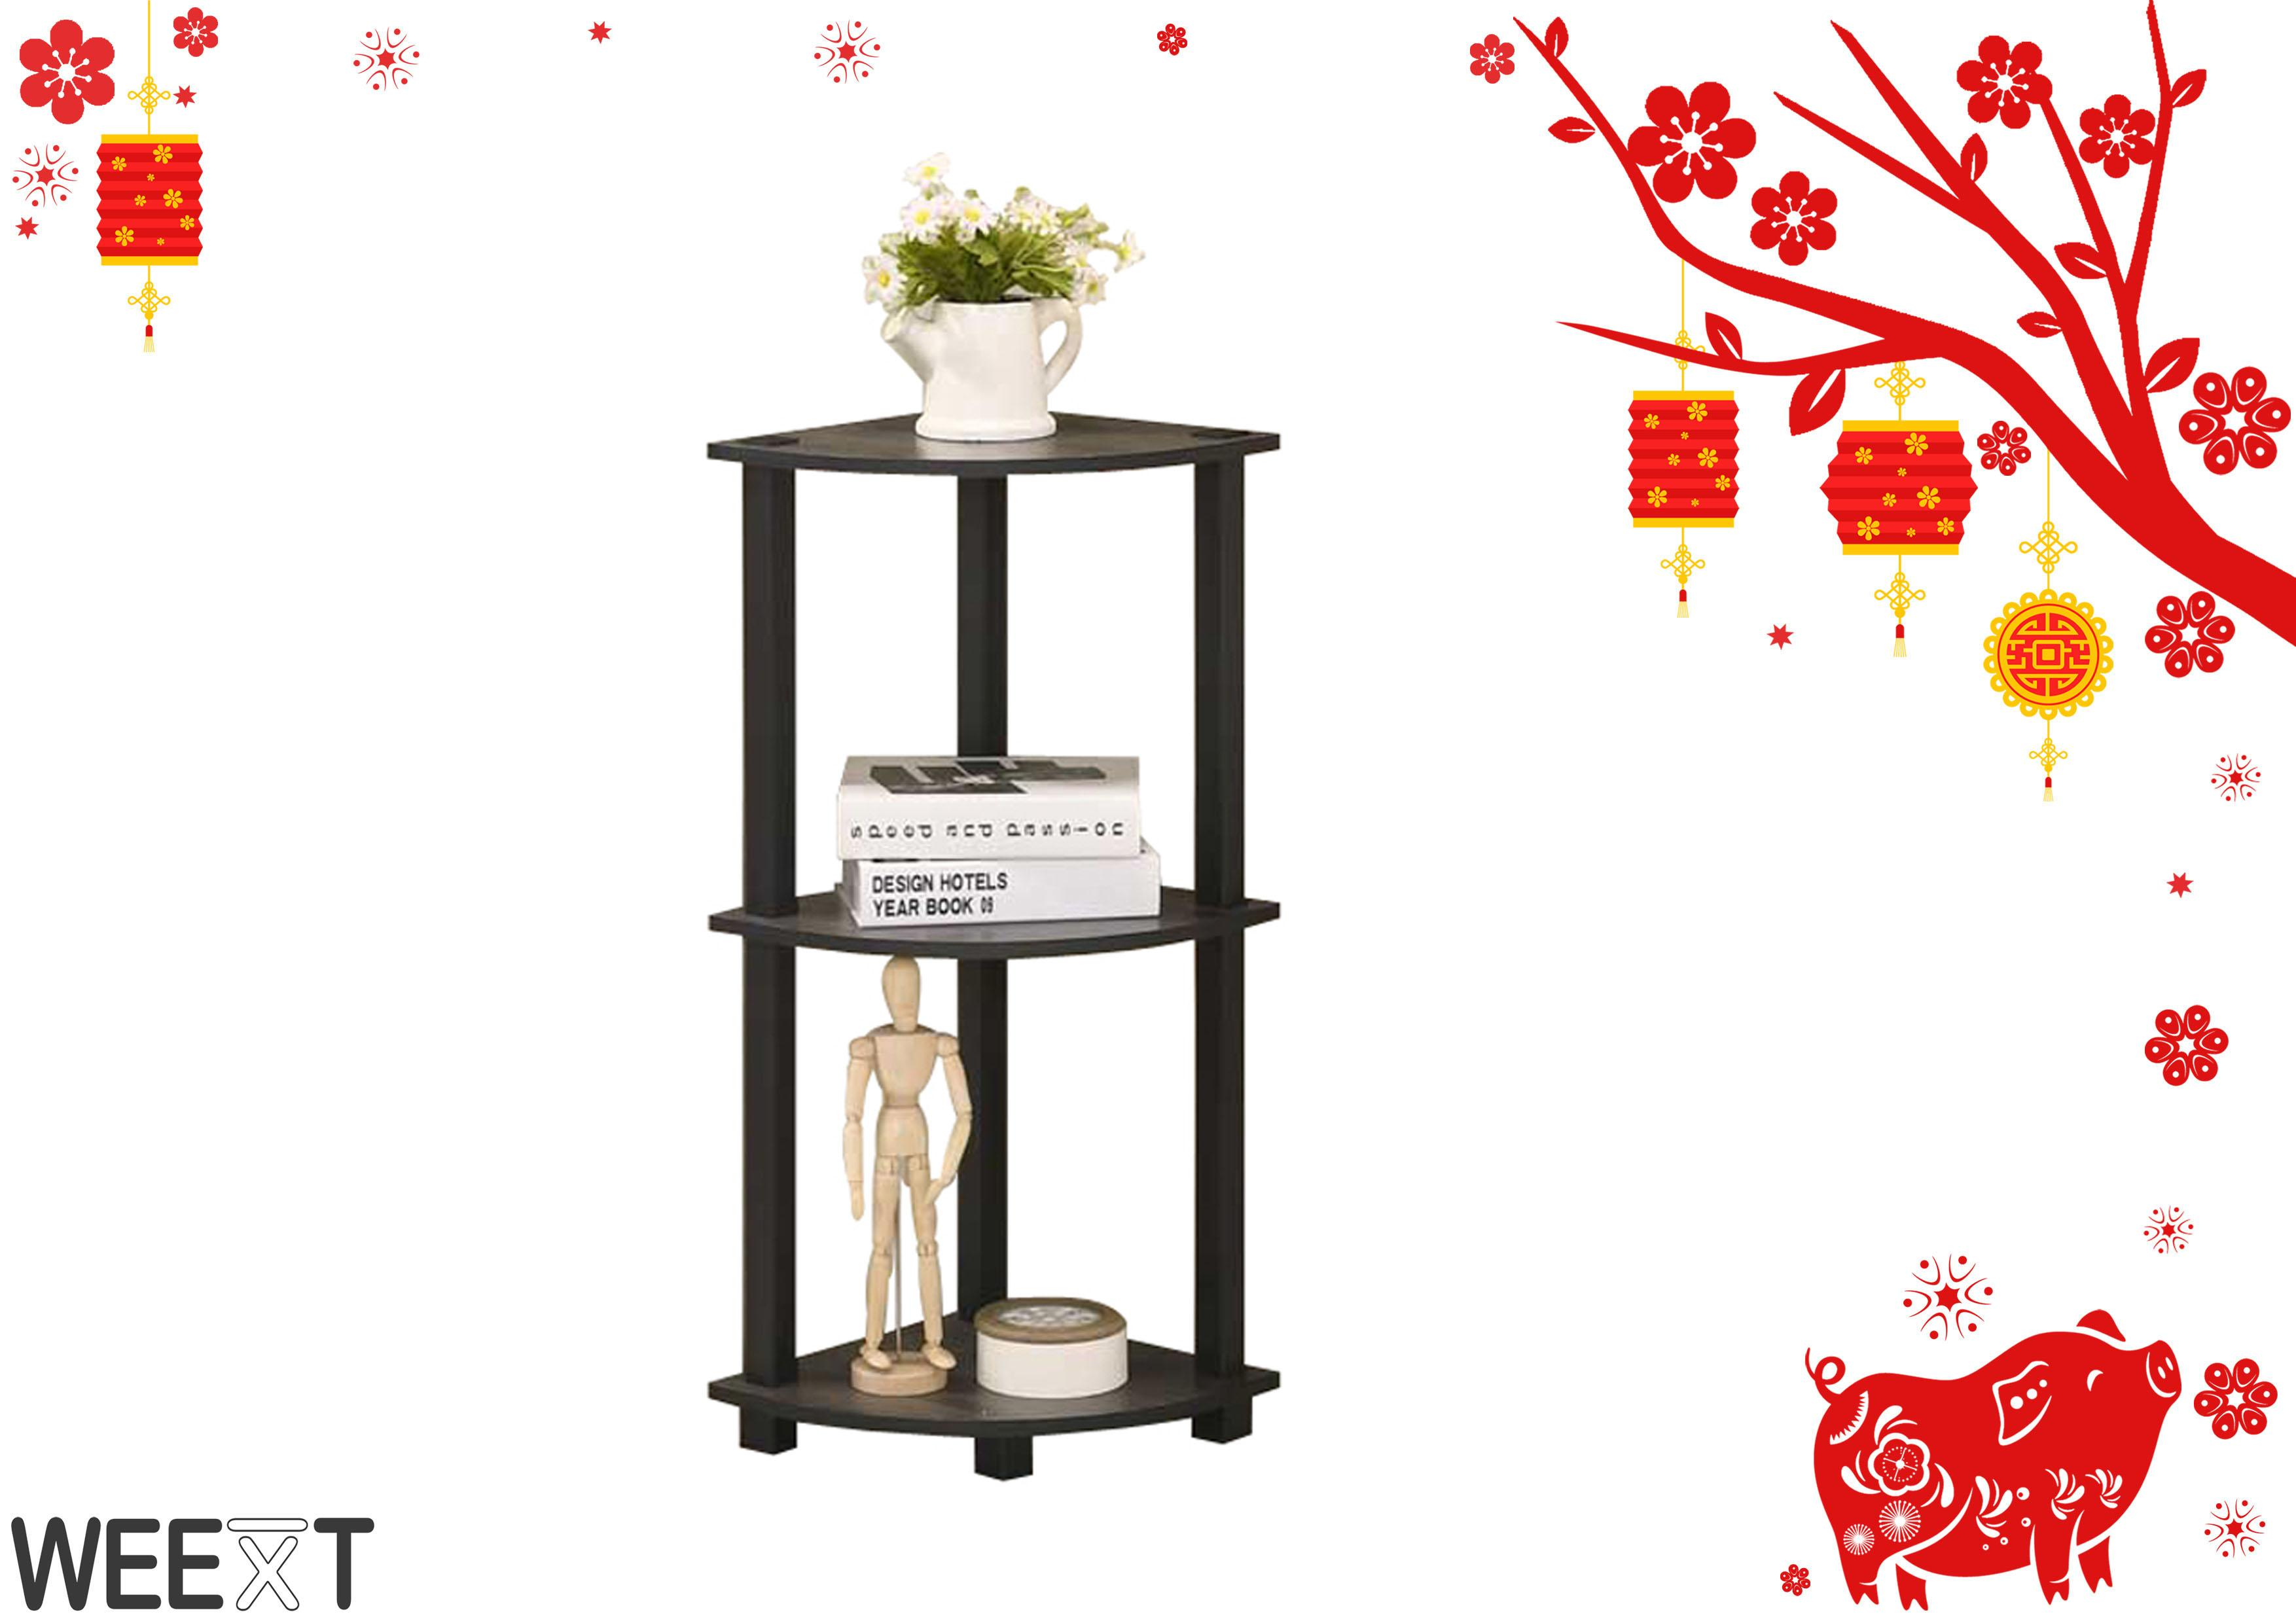 Weext 3 Tier Corner Shelf By Weext Trading Corp Warehouse.